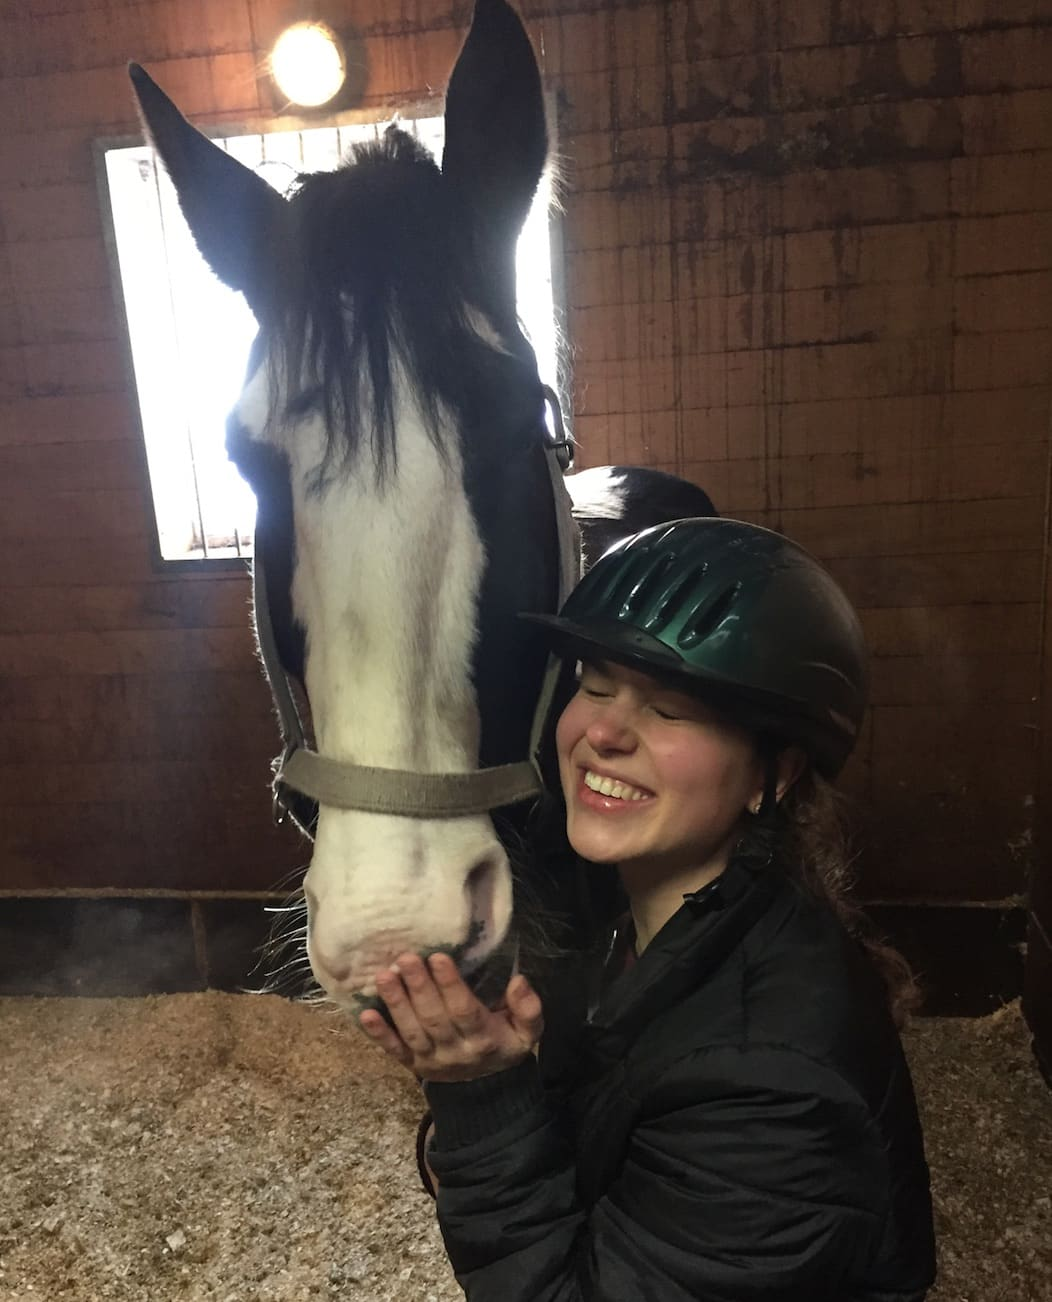 bonding is key to maintaining your relationship with your horse